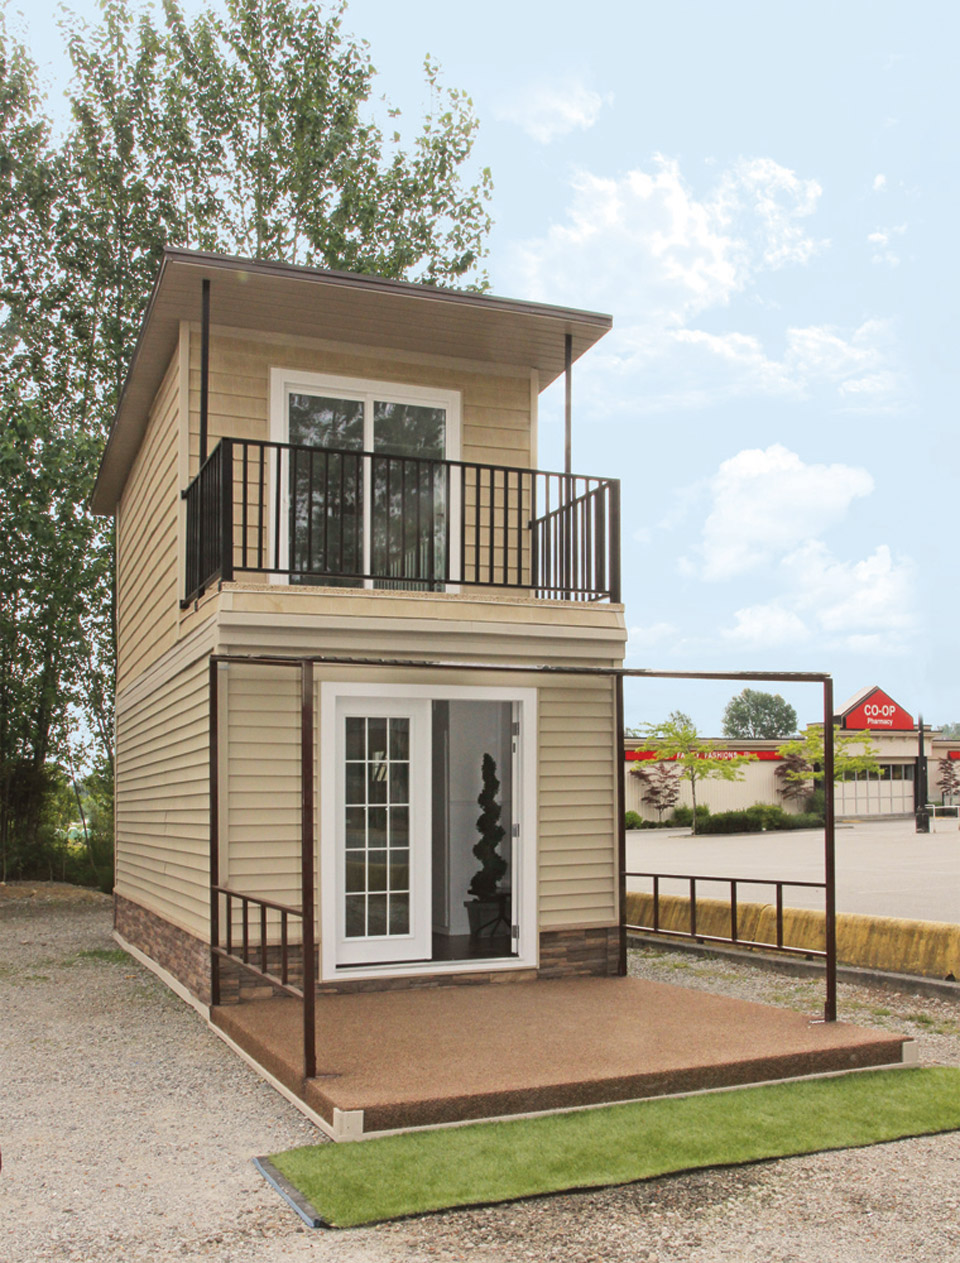 The eagle 1 a 350 sq ft 2 story steel framed micro home for Small two floor house design